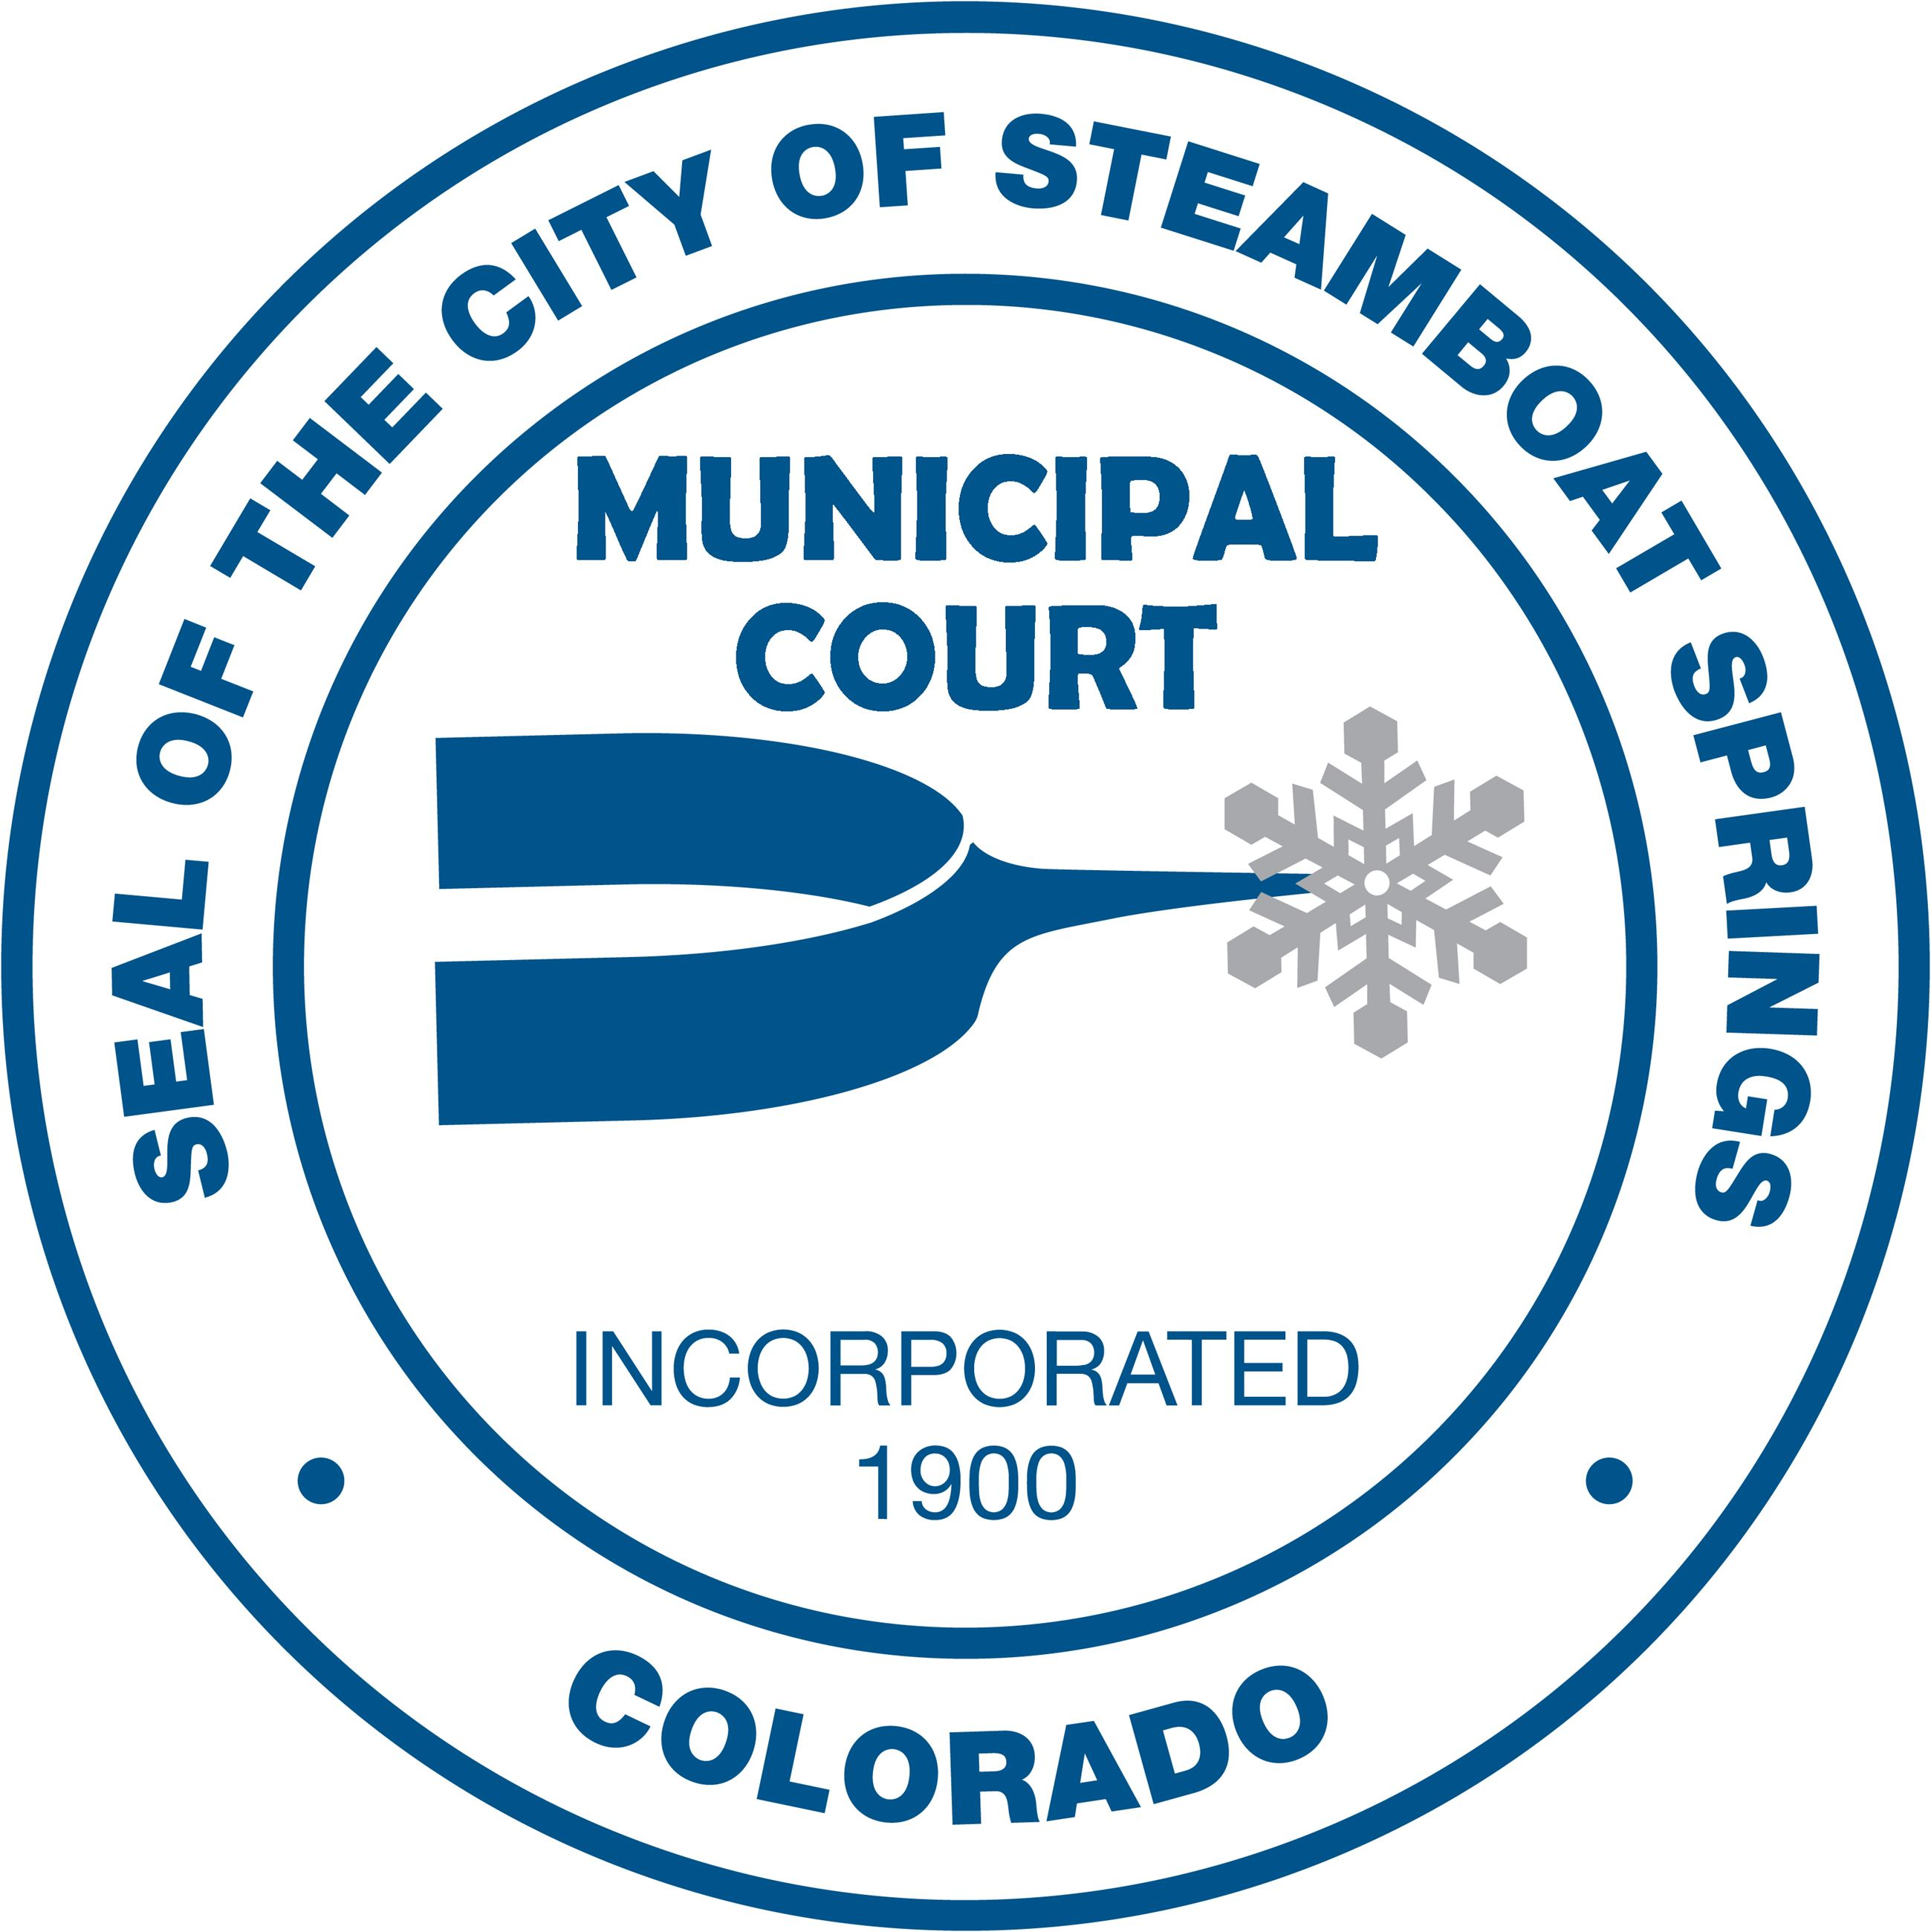 City-of-SS_Seal-2017-Municipal Court_2-Color